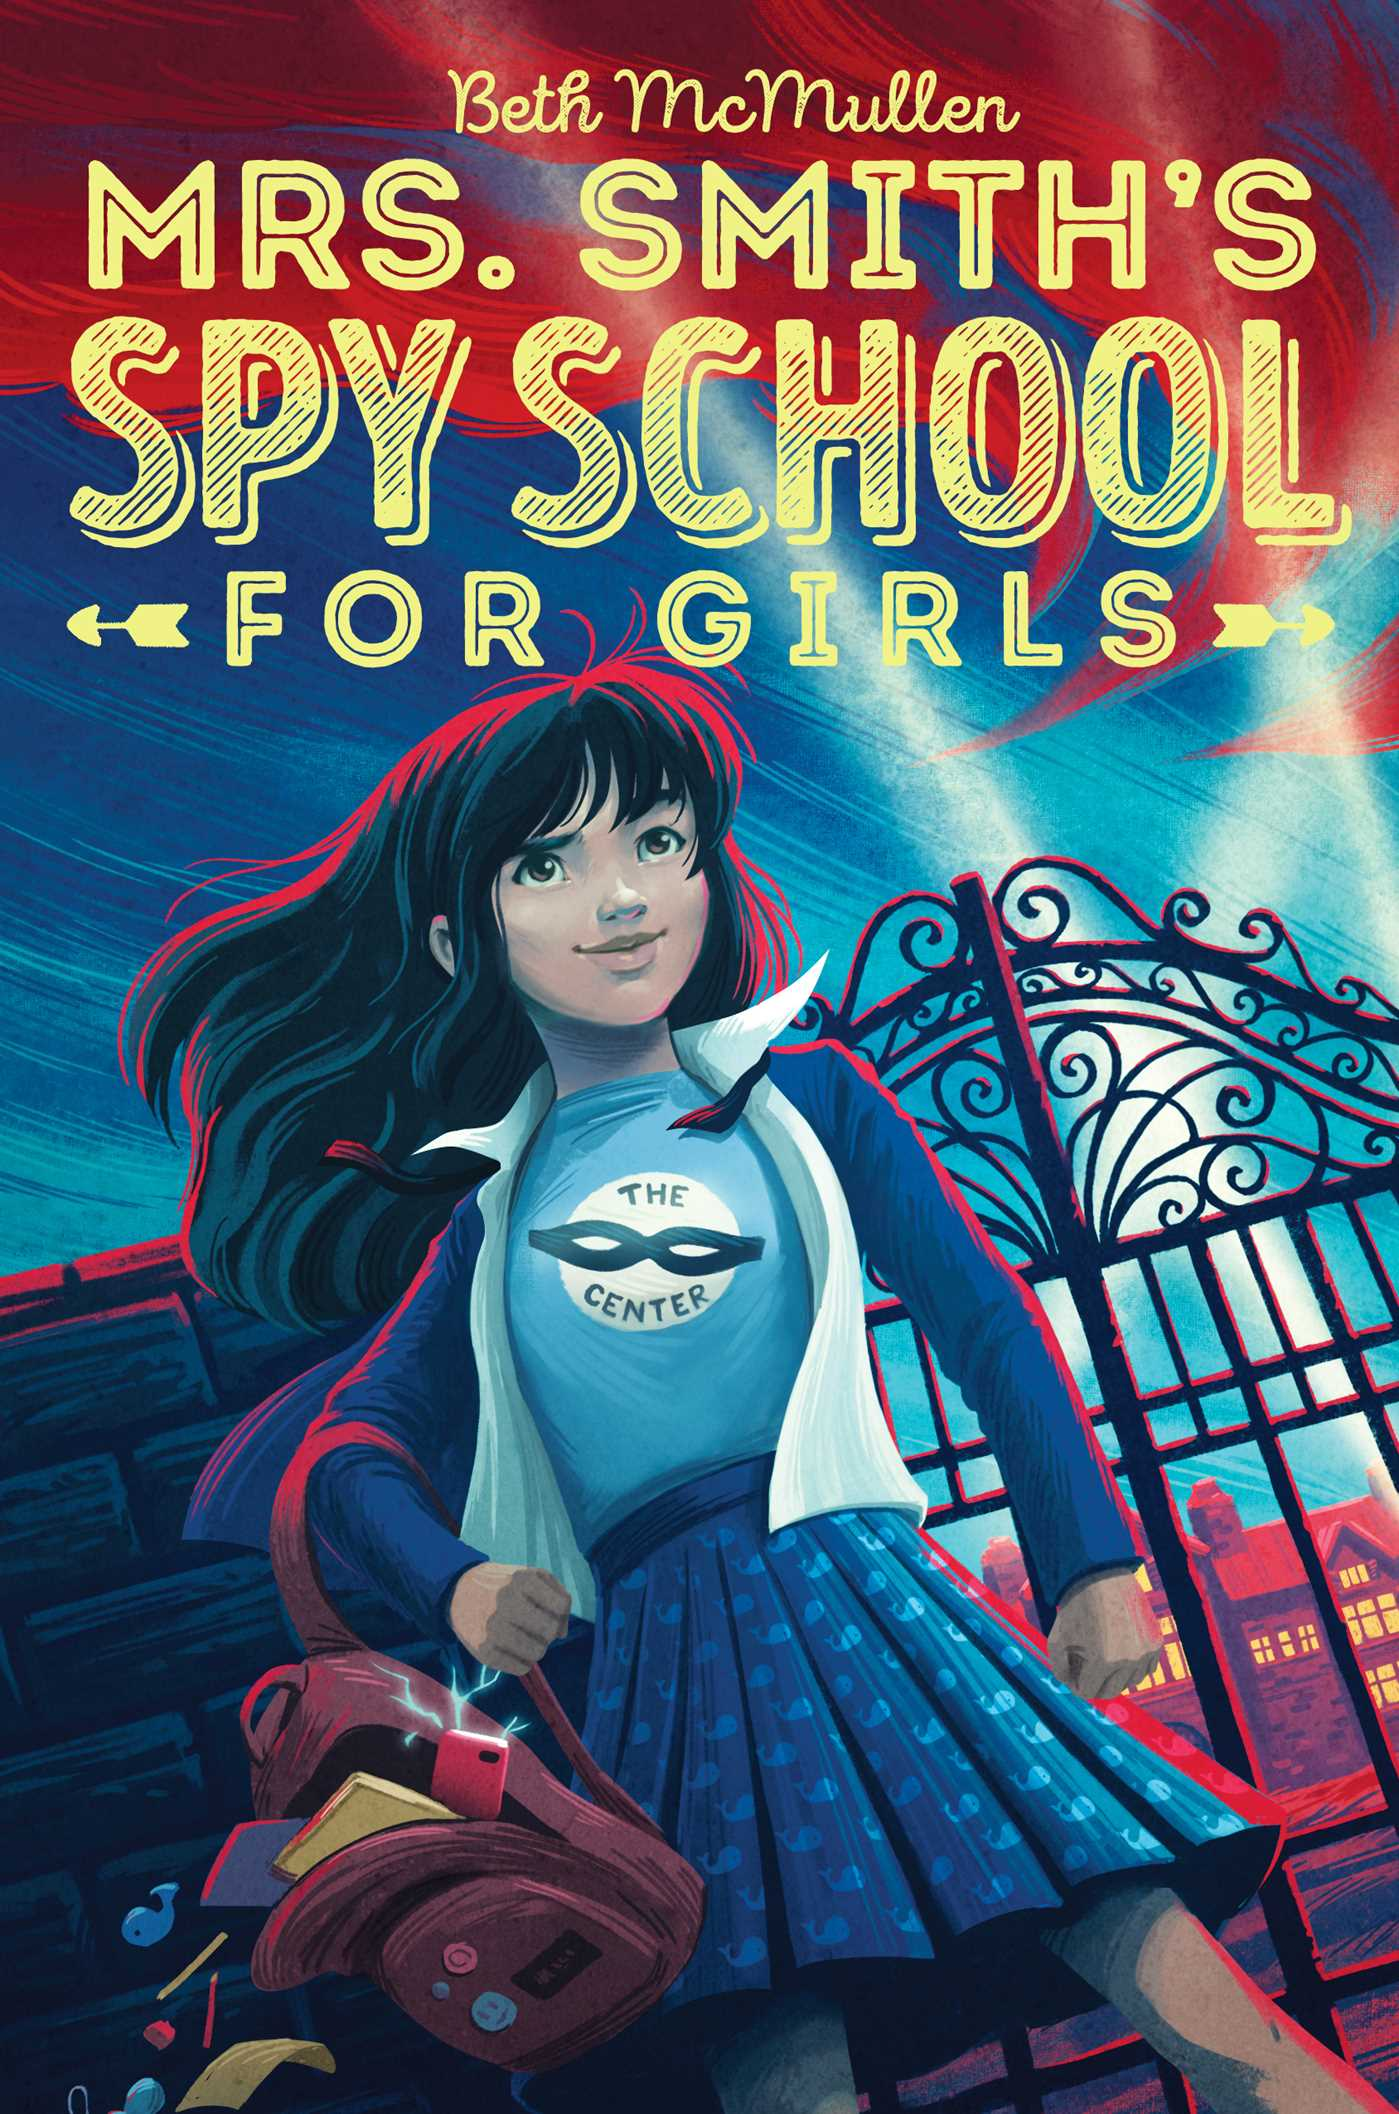 Mrs smiths spy school for girls 9781481490214 hr